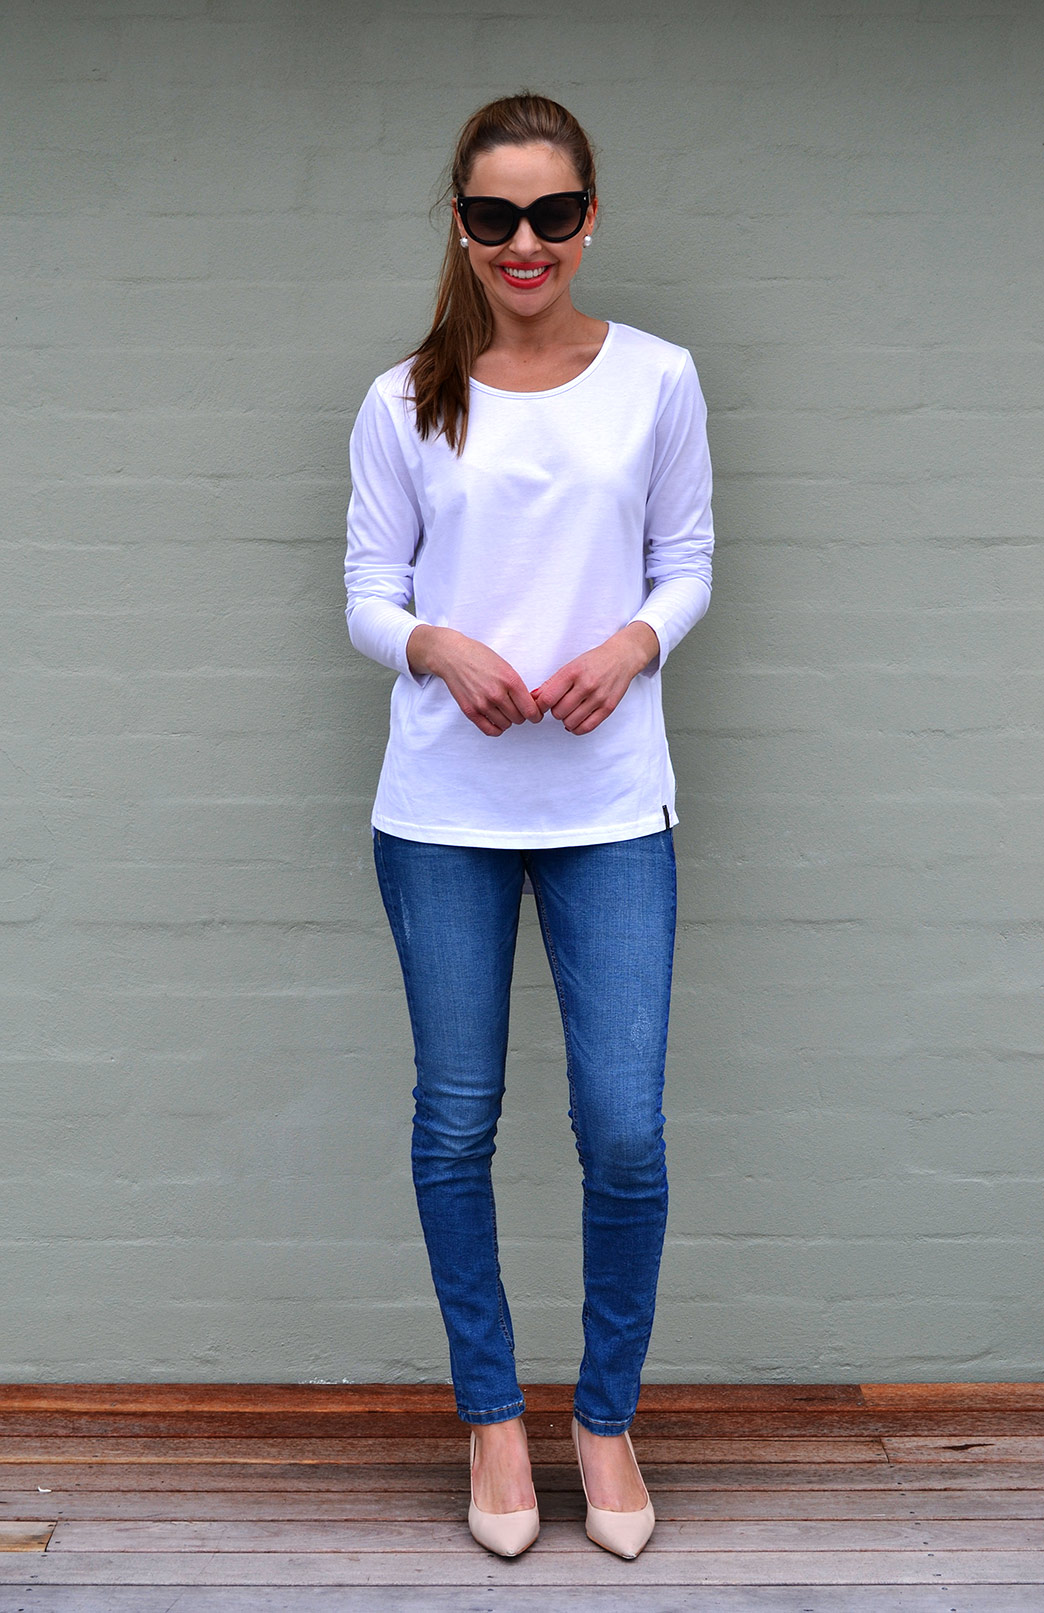 Lucy Top - Organic Cotton - Women's White Cotton Long Sleeve Top - Smitten Merino Tasmania Australia